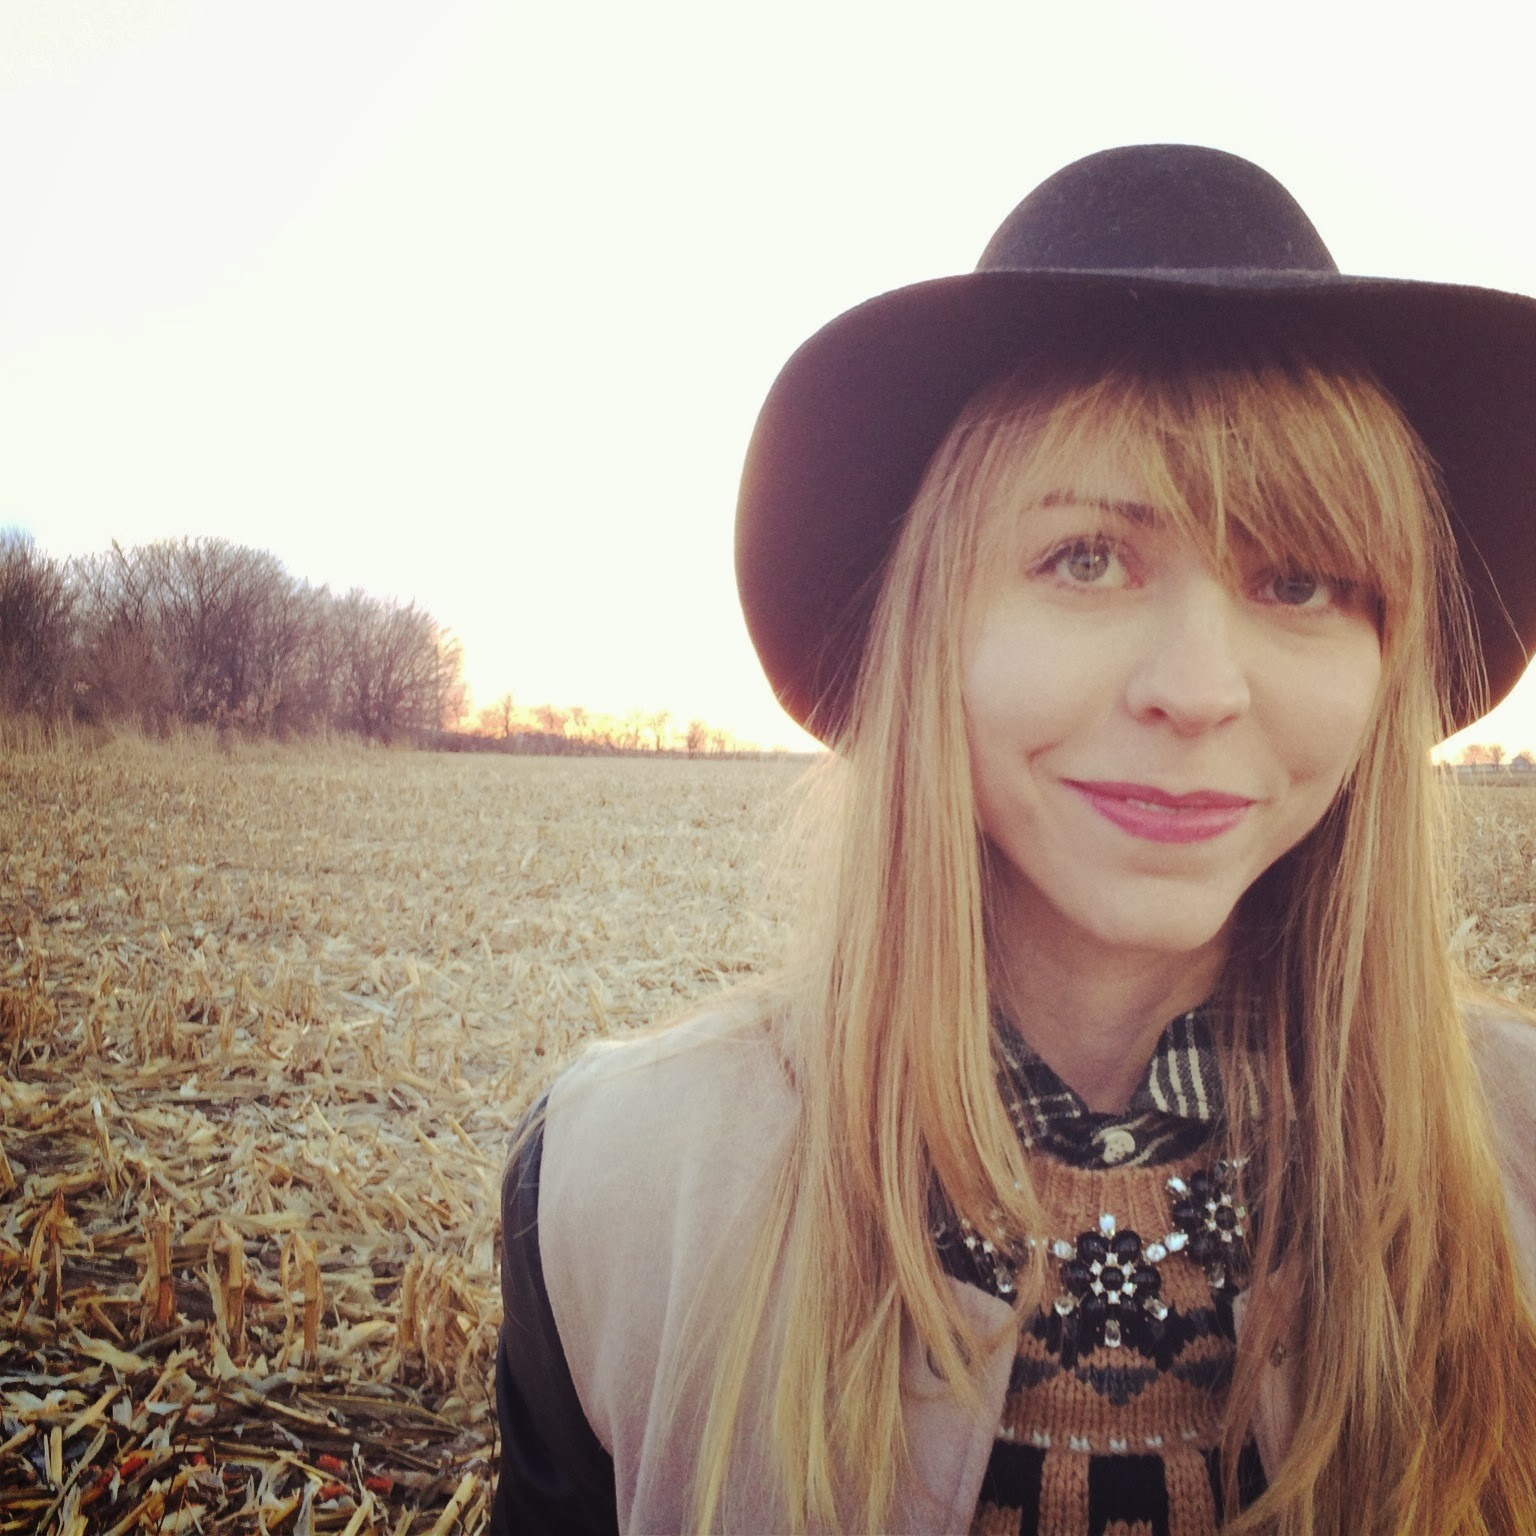 Nebraska, cornfield, Madewell, Topshop, Plaid, Denim, Fashion, Casual, Roots, sunset